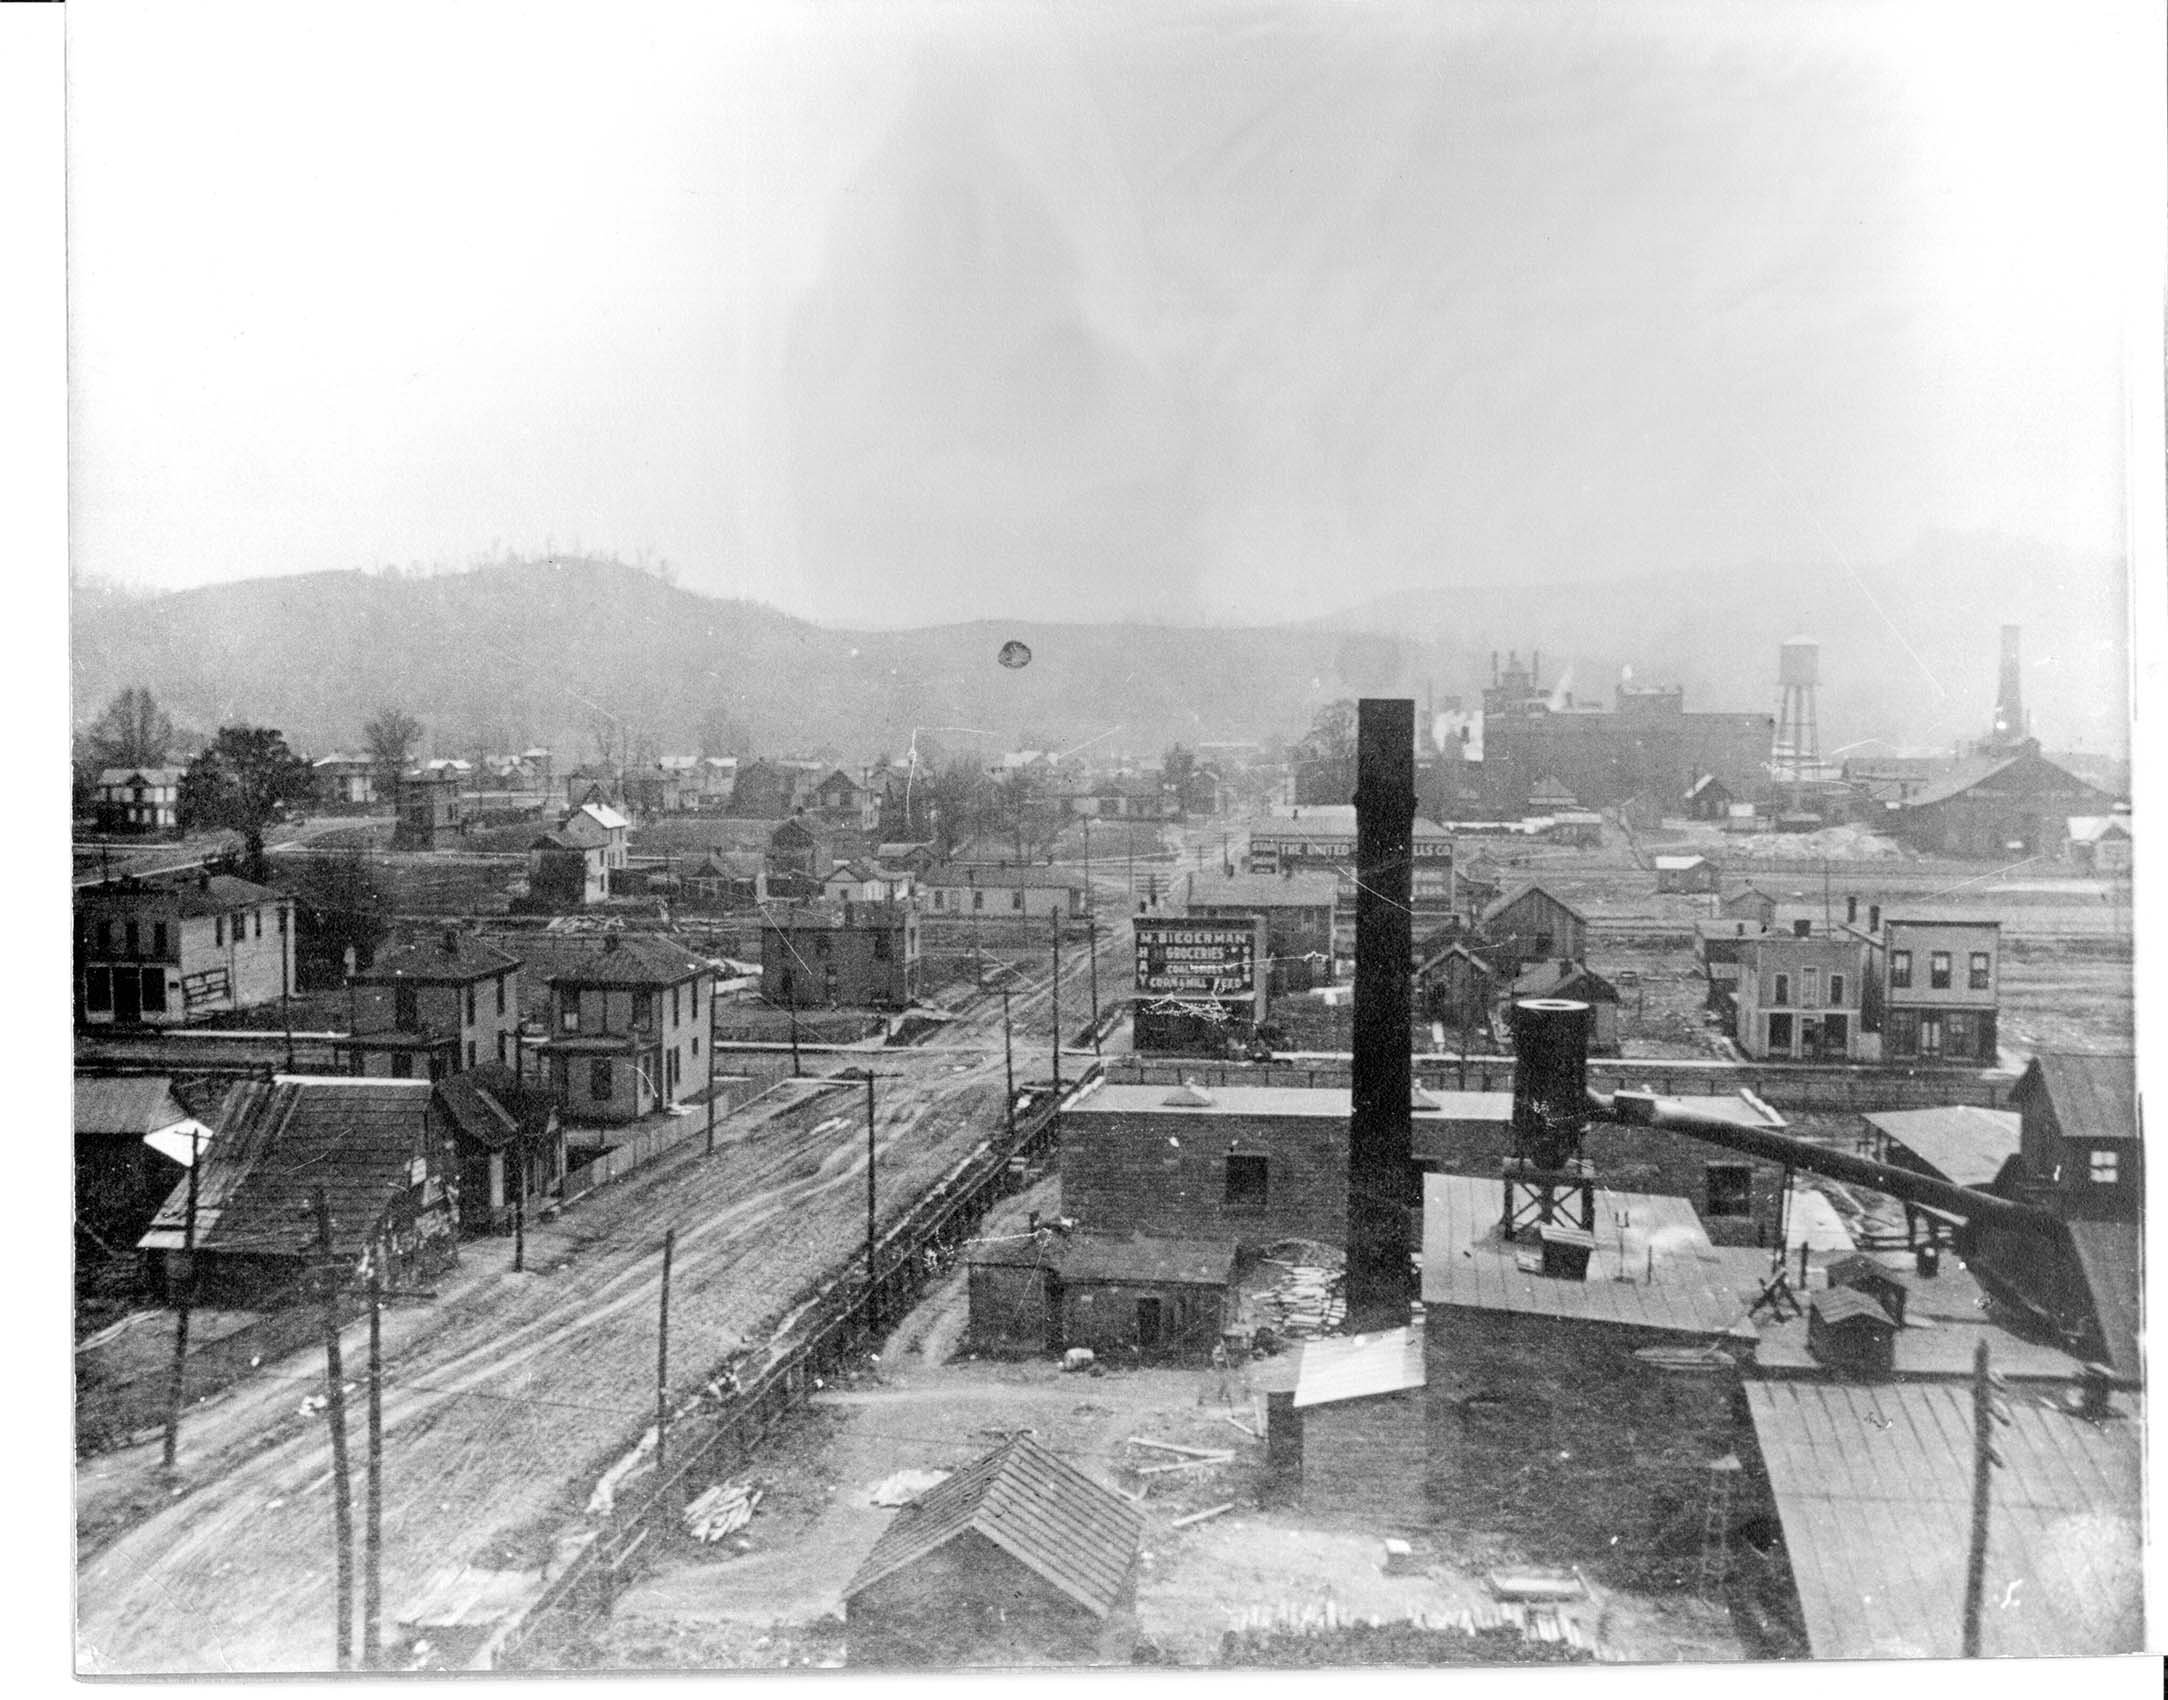 Fourteenth Street West looking south, in 1904. The area was predominately occupied by hardware and glassware factories, and breweries. Image courtesy of Marshall University Special Collections.